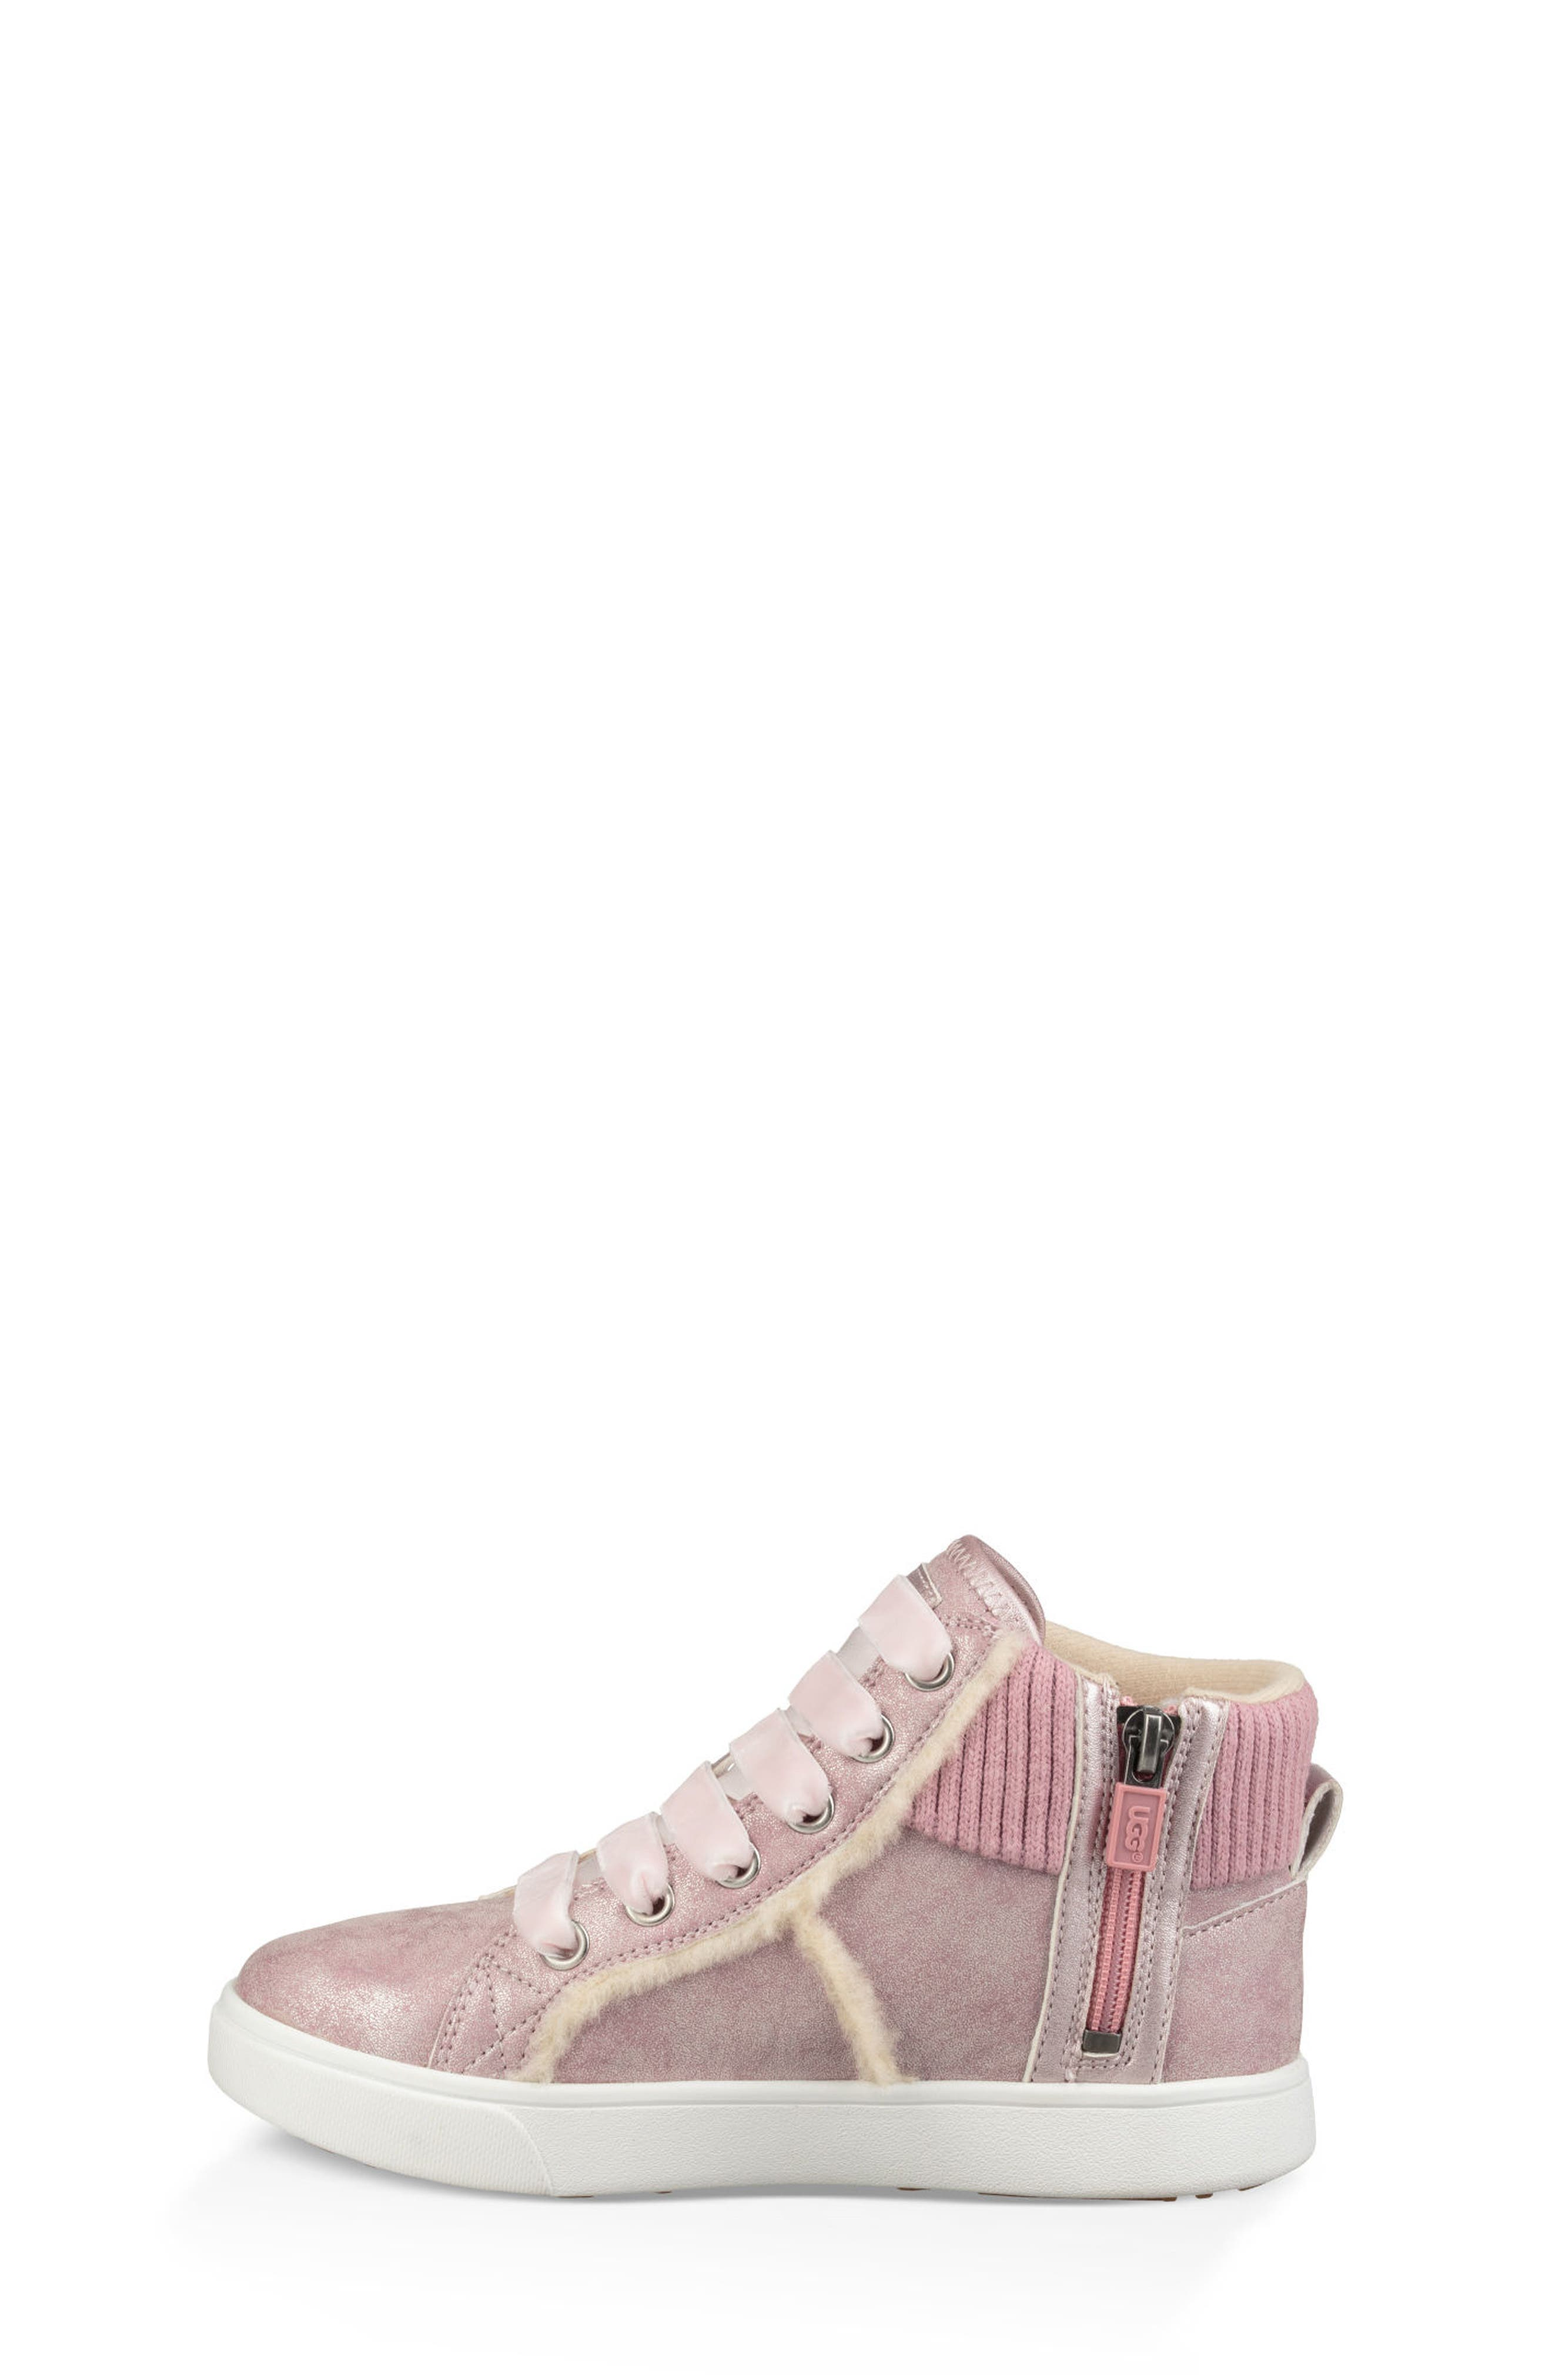 Addie Genuine Shearling High Top Sneaker,                             Alternate thumbnail 2, color,                             Cameo Pink